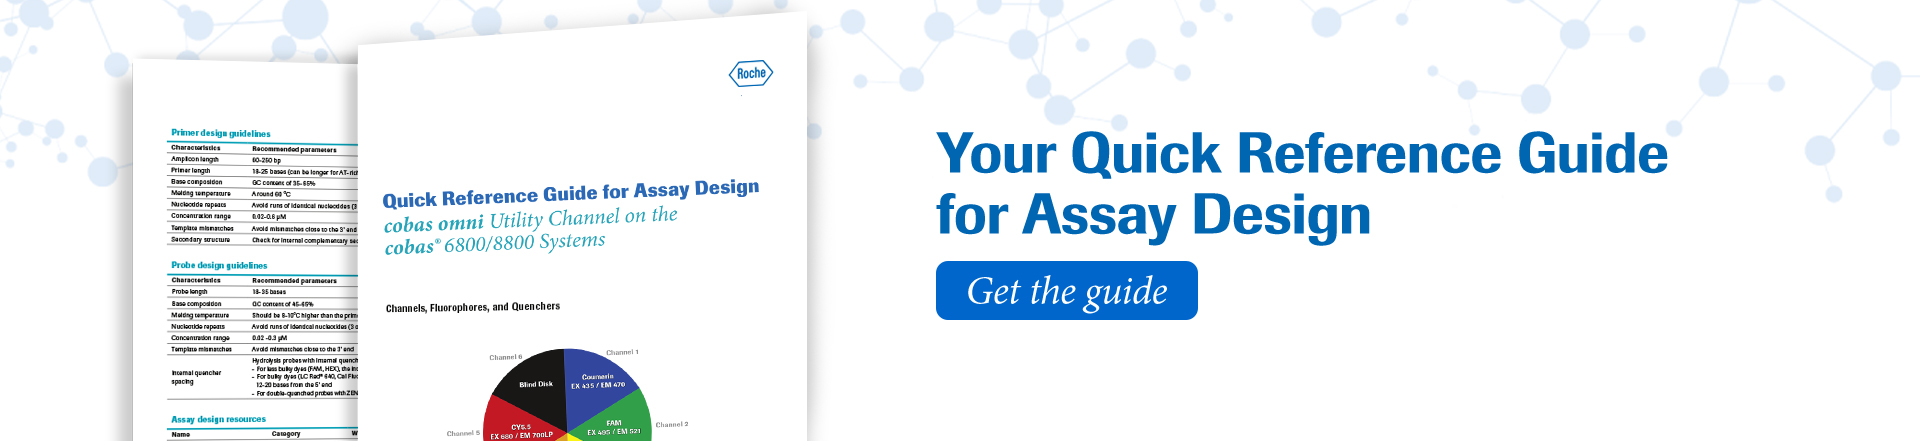 Quick Reference Guide for Assay Design